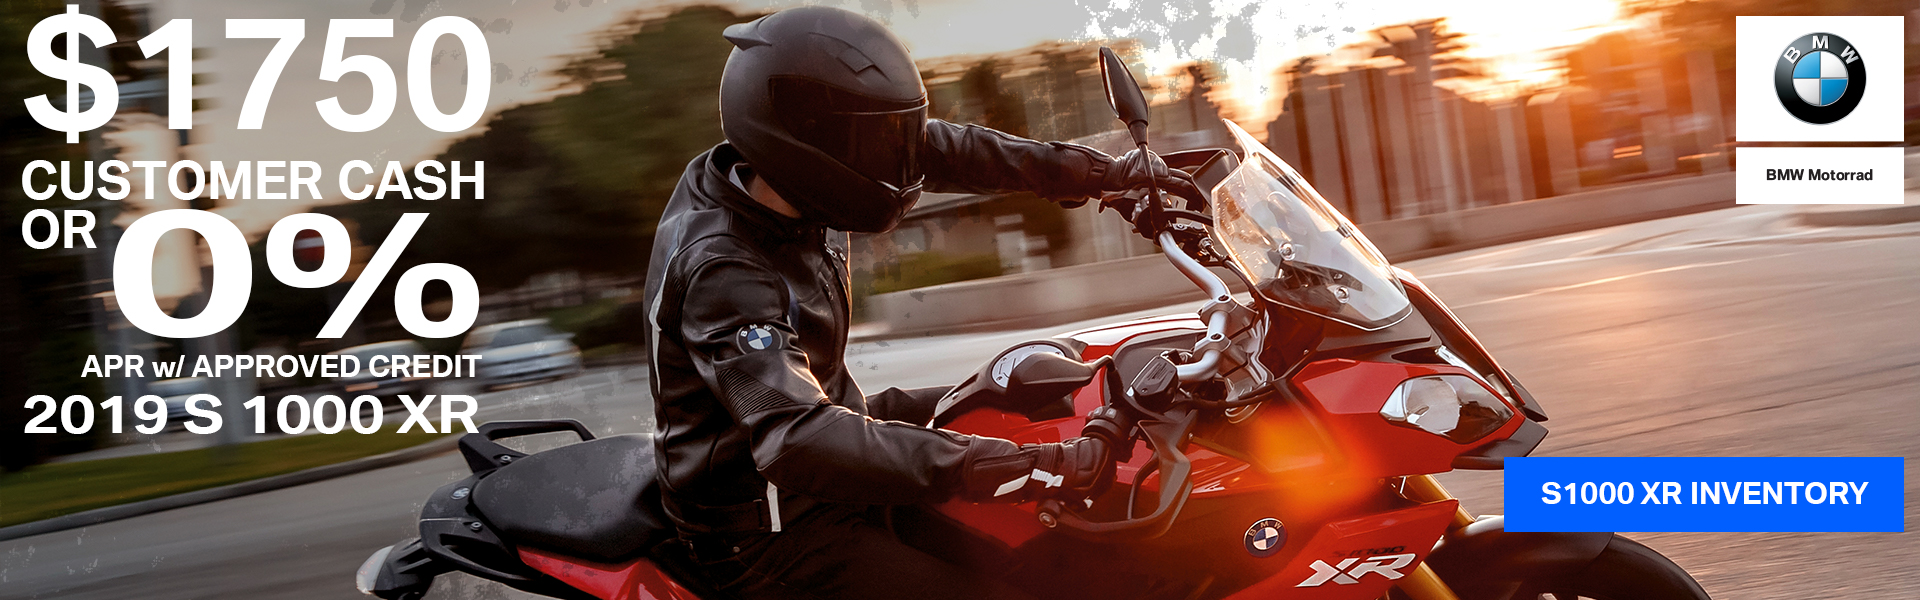 New Motorcycles and Service   BMW Motorcycles of San Francisco